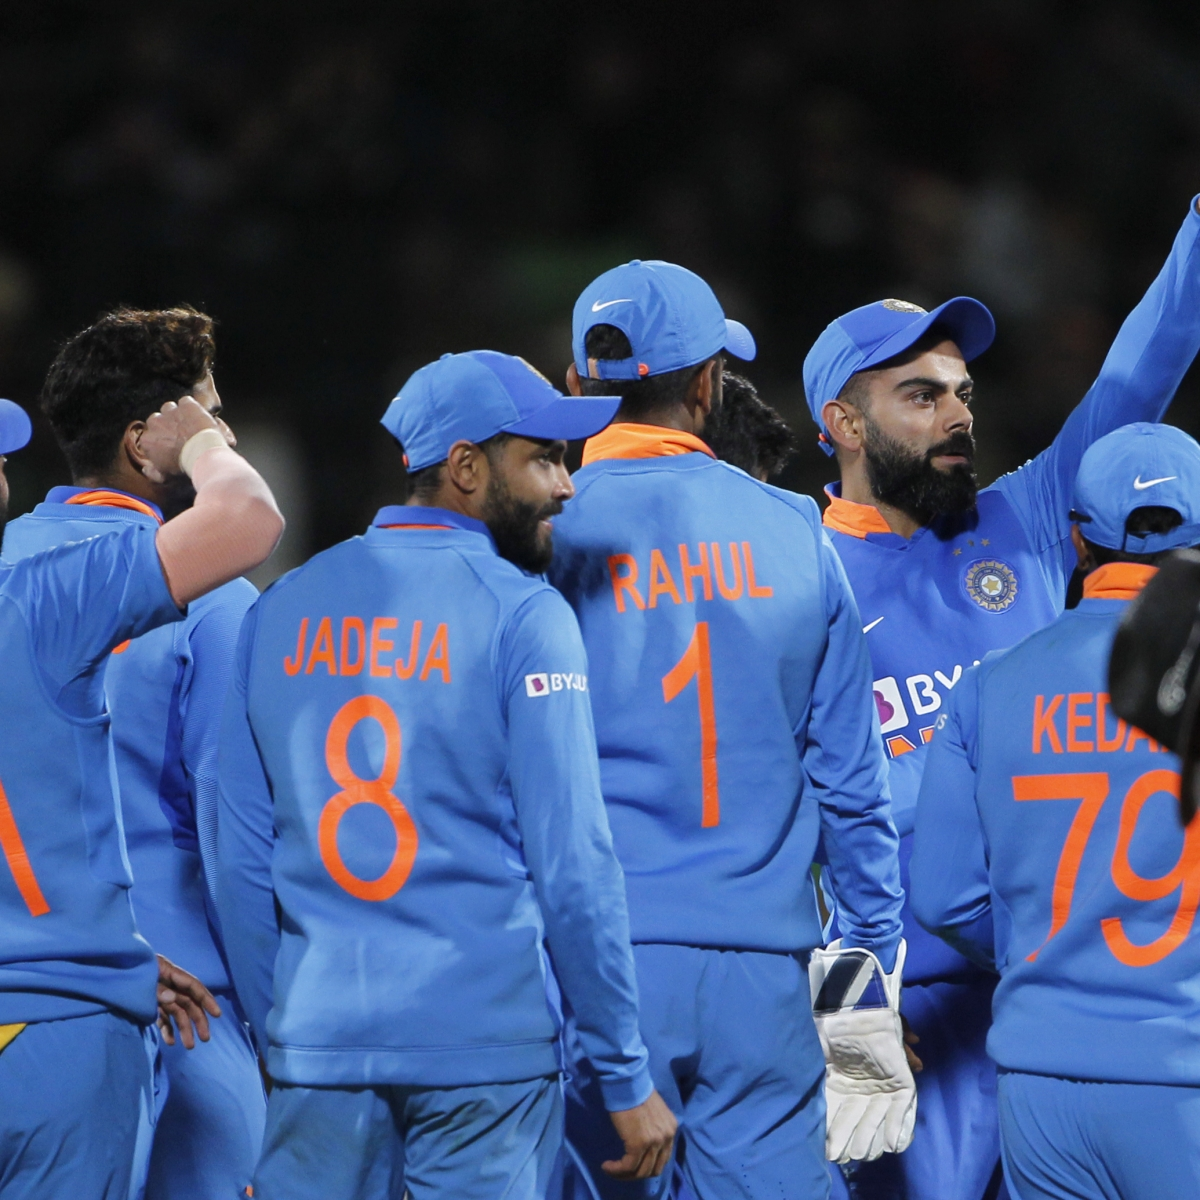 NZ vs IND 2nd ODI: When, where and how to watch live telecast